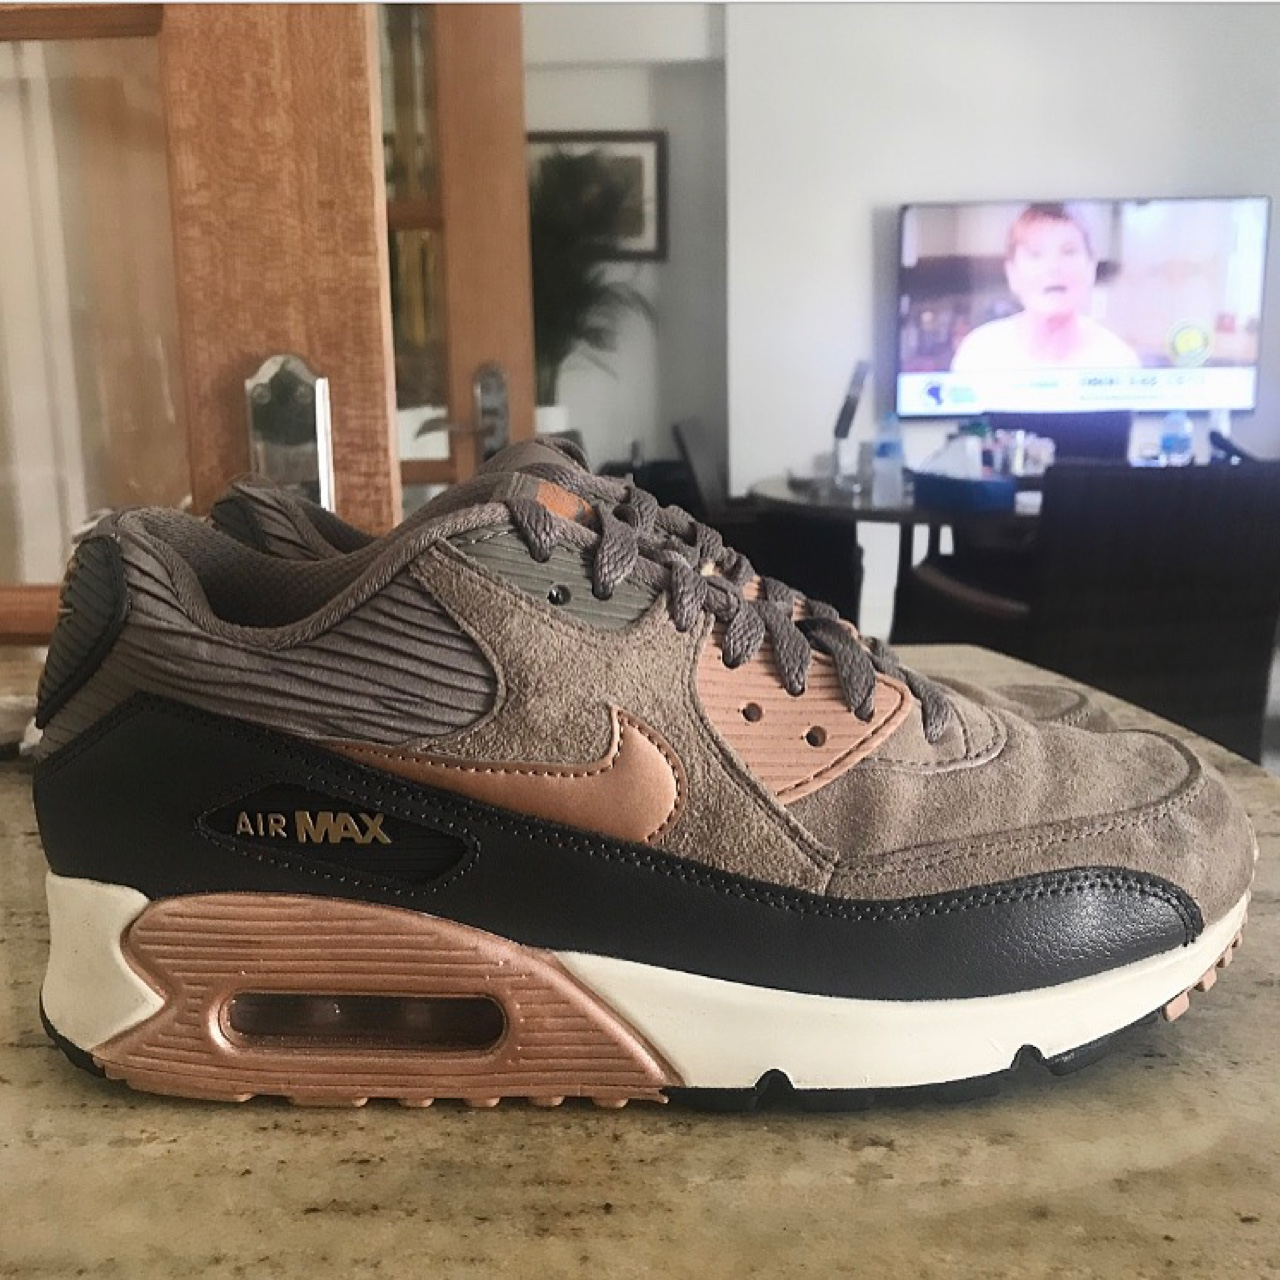 competitive price 1b155 cbbca Nike Air Max 90 Rose Gold Women's Trainers. Size 5,... - Depop